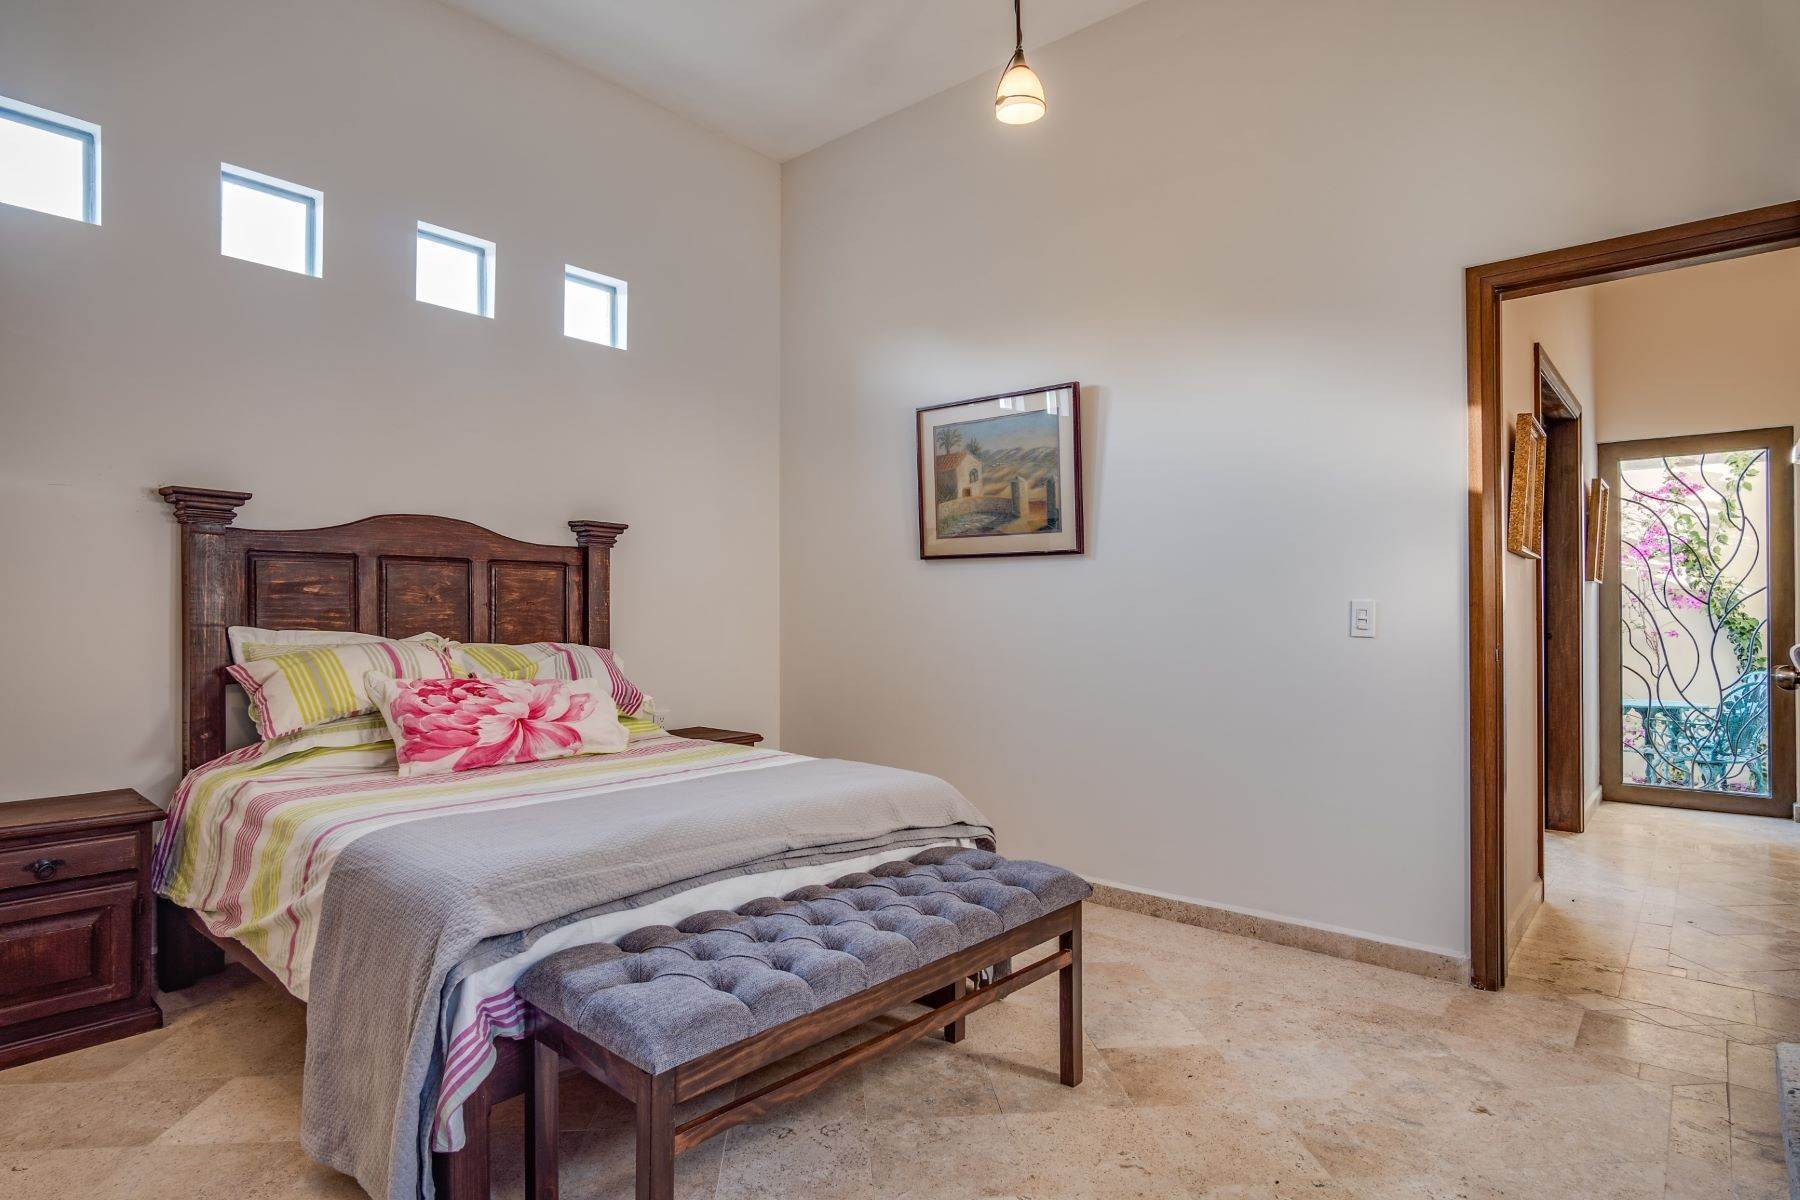 15. Single Family Homes for Sale at Guadalupe Condo Amado Nervo 8-A San Miguel De Allende, Guanajuato 37710 Mexico